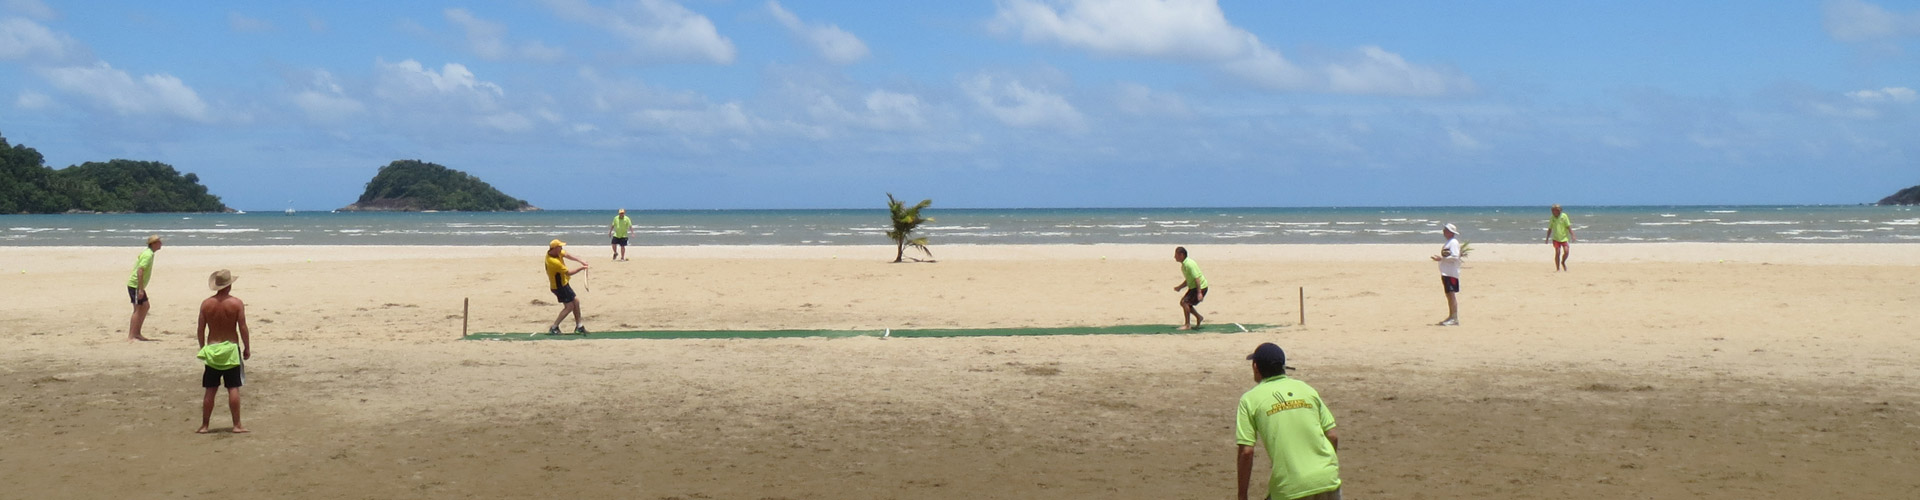 koh chang beach cricket match 2